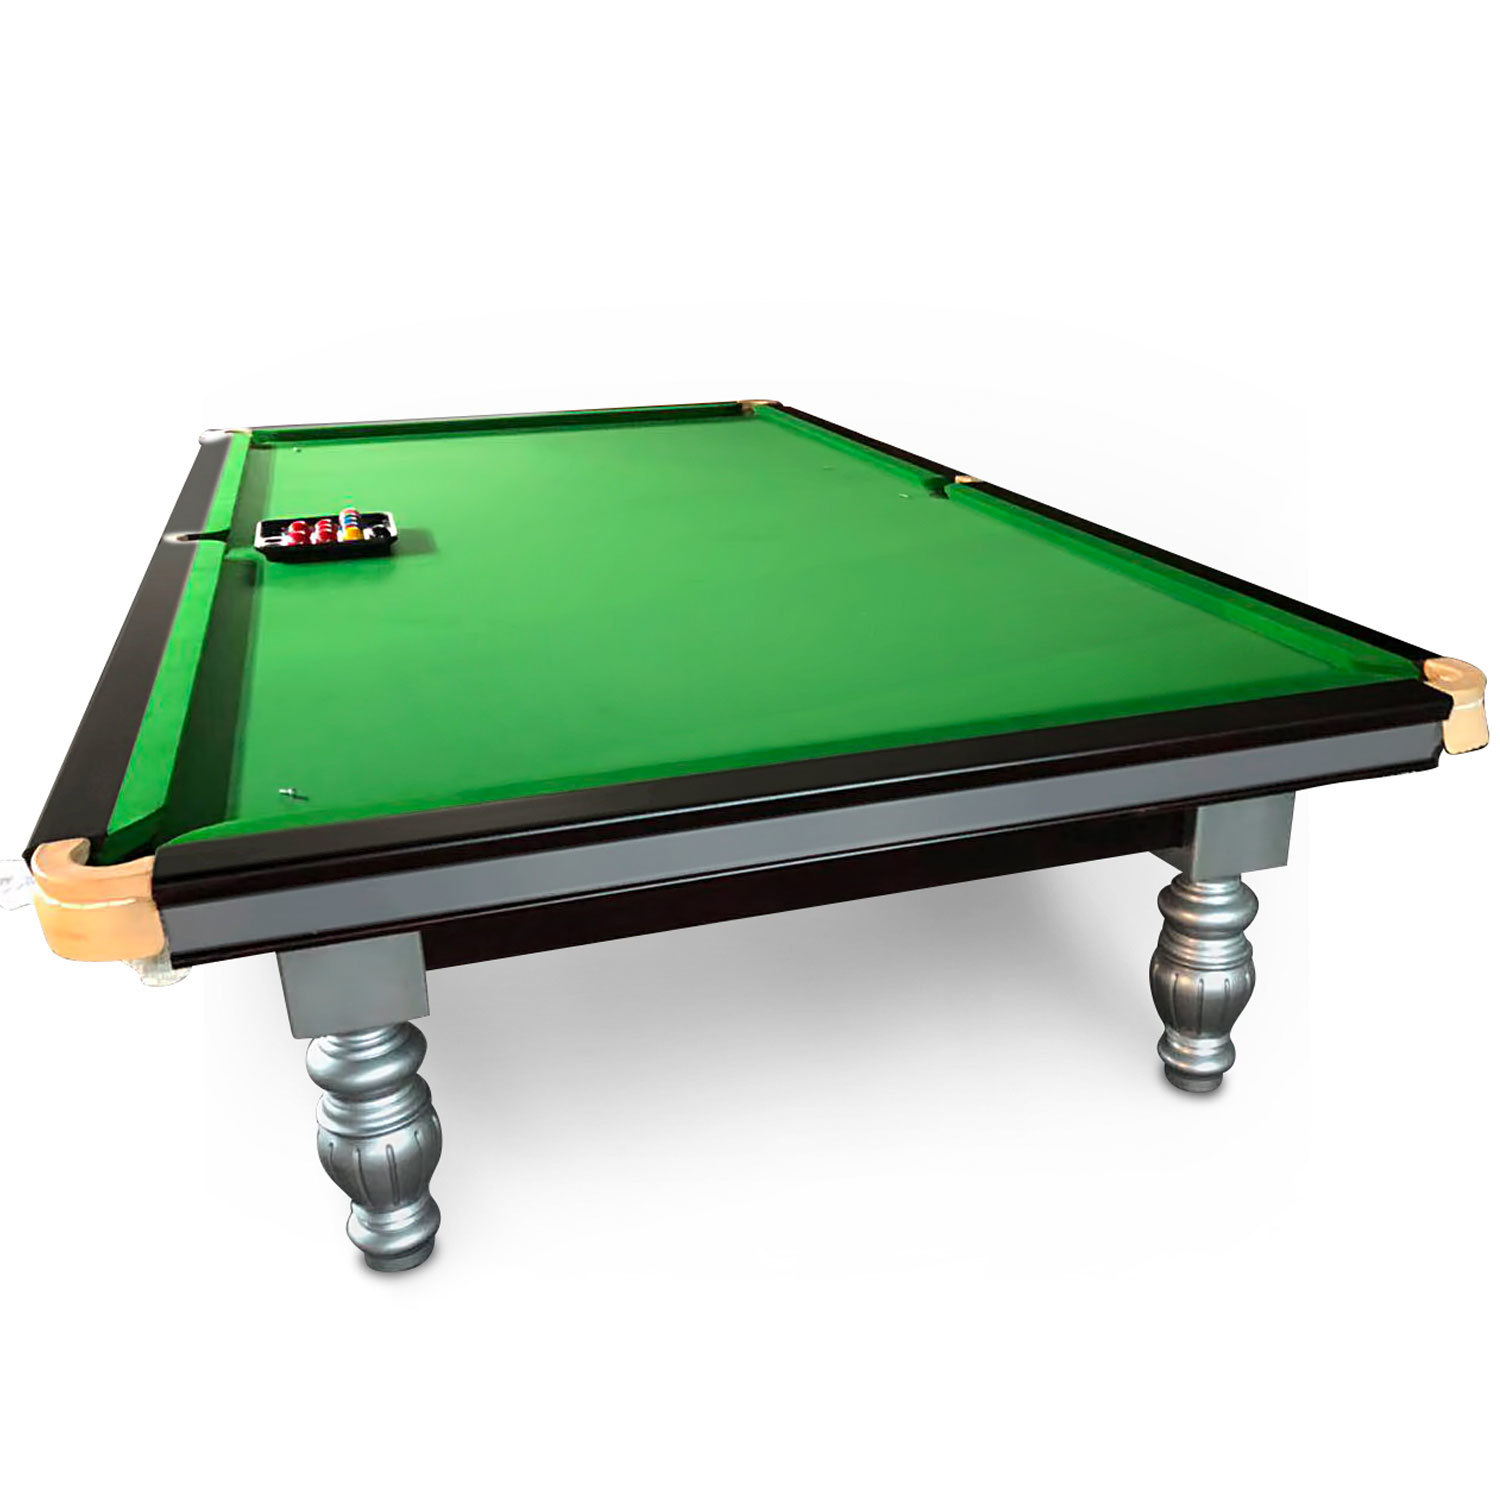 12 Foot Slate Windsor Snooker Table - Timber cushion